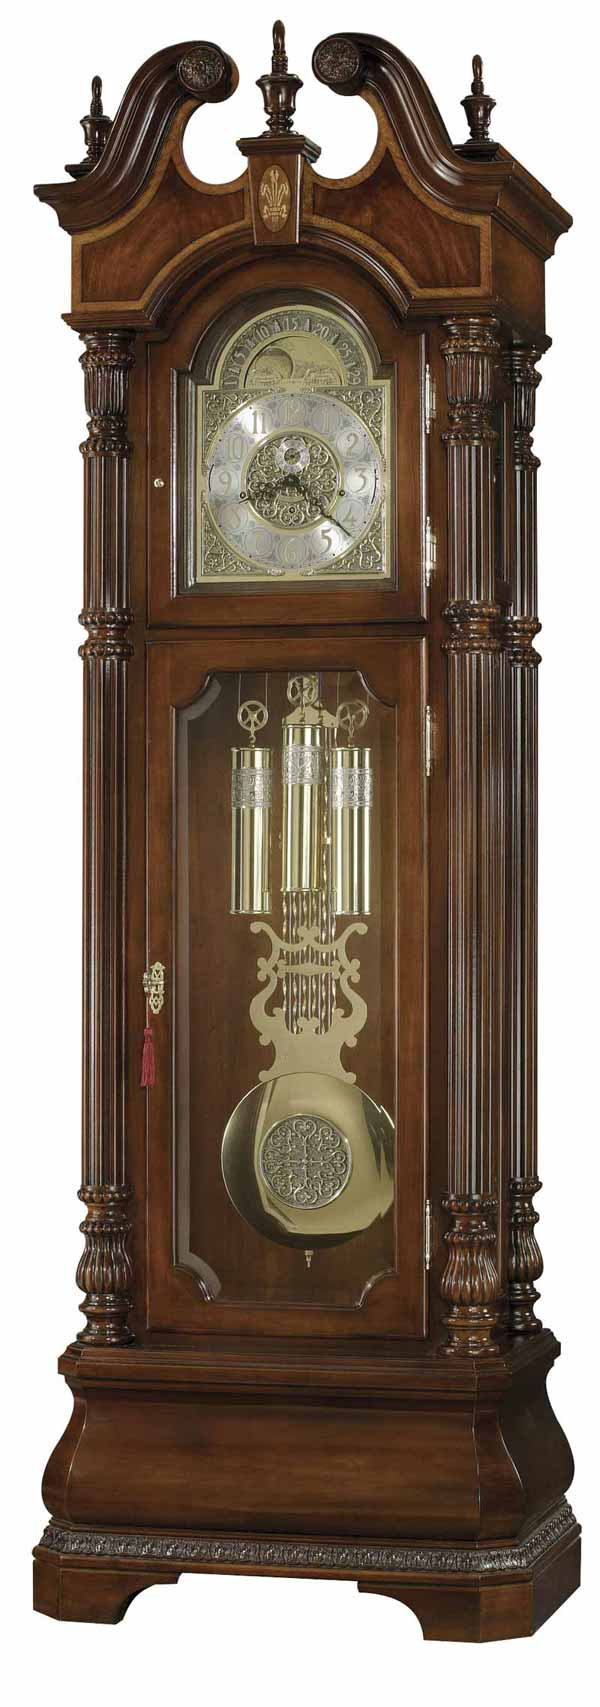 Cool Howard Miller Clock Parts for Repairing Clock Part: Howard Miller Pendulum Wall Clock | Klockit Com | Howard Miller Clock Parts